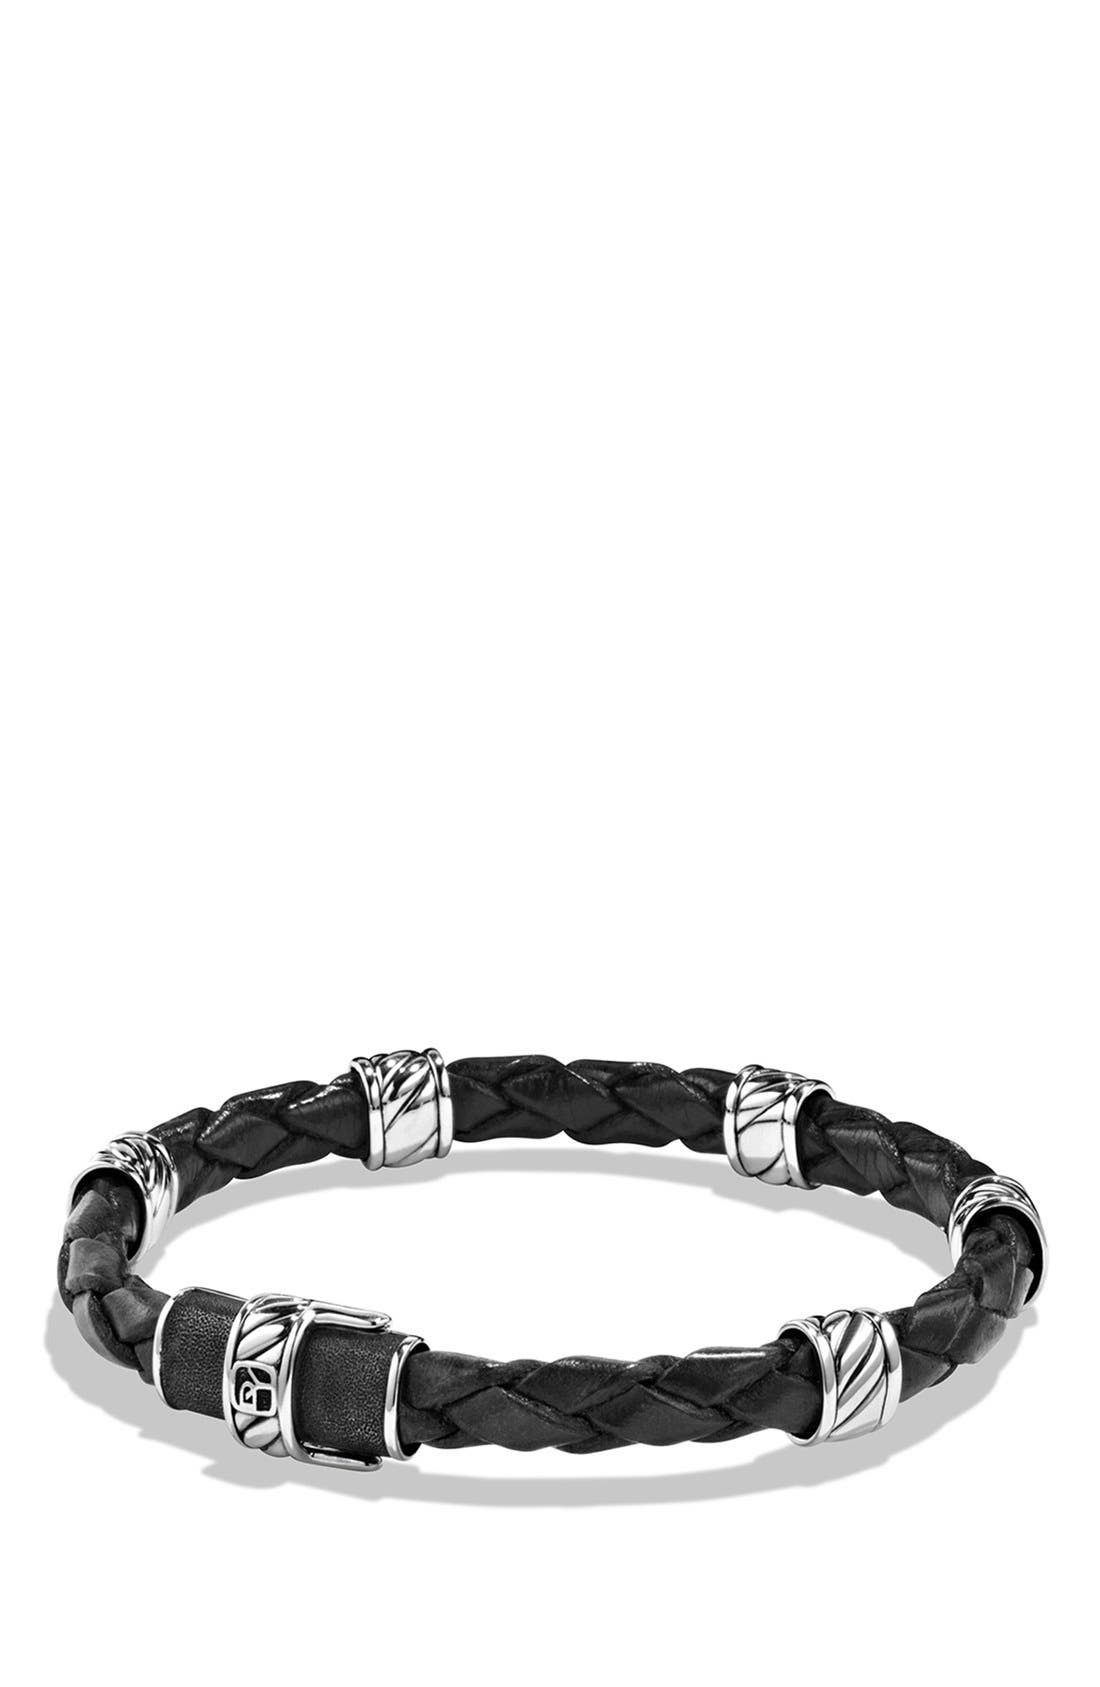 Main Image - David Yurman 'Cable Classics' Leather Station Bracelet in Brown